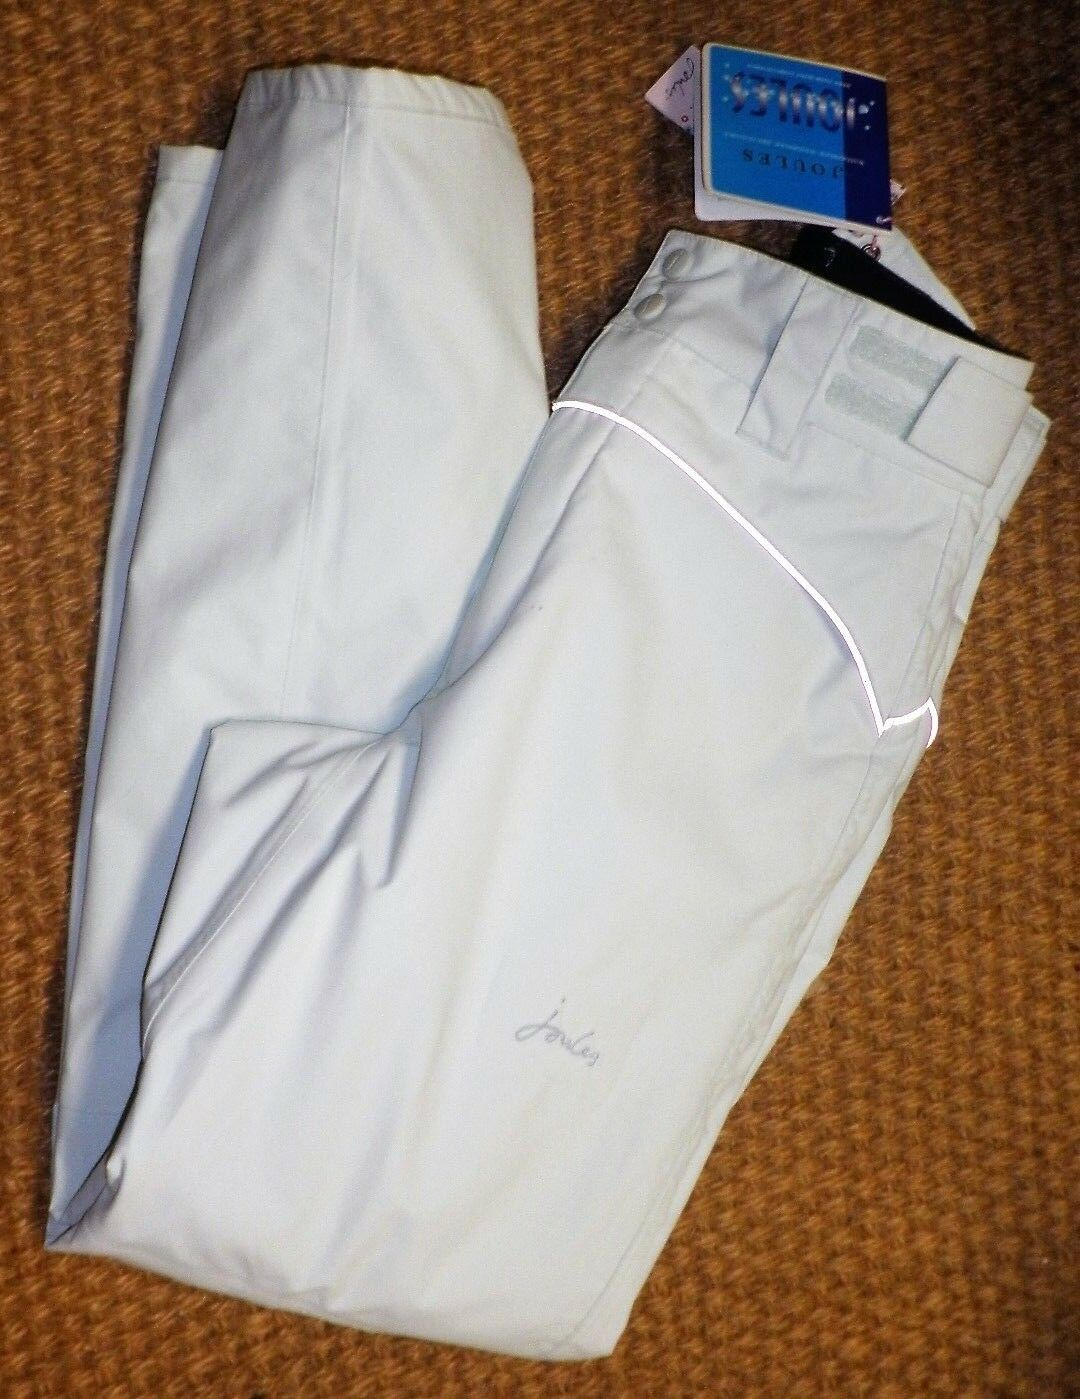 Joules Fernie Waterproof Trousers   Over Trousers For Riding   Skiing   Walking